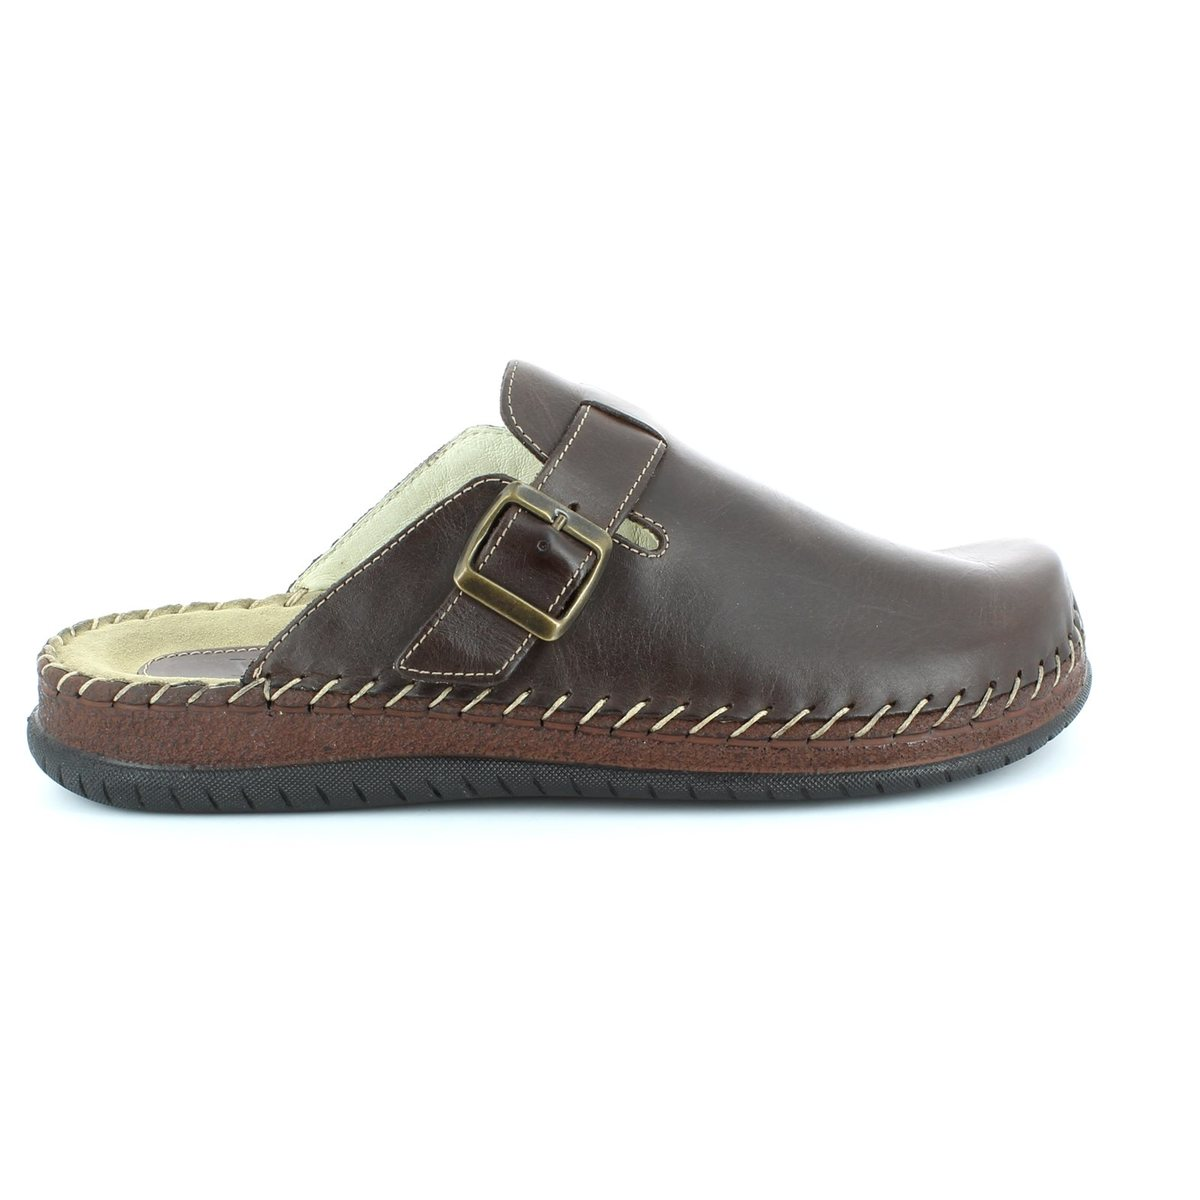 walk in the city conform 9289 19102 brown waxy house shoe